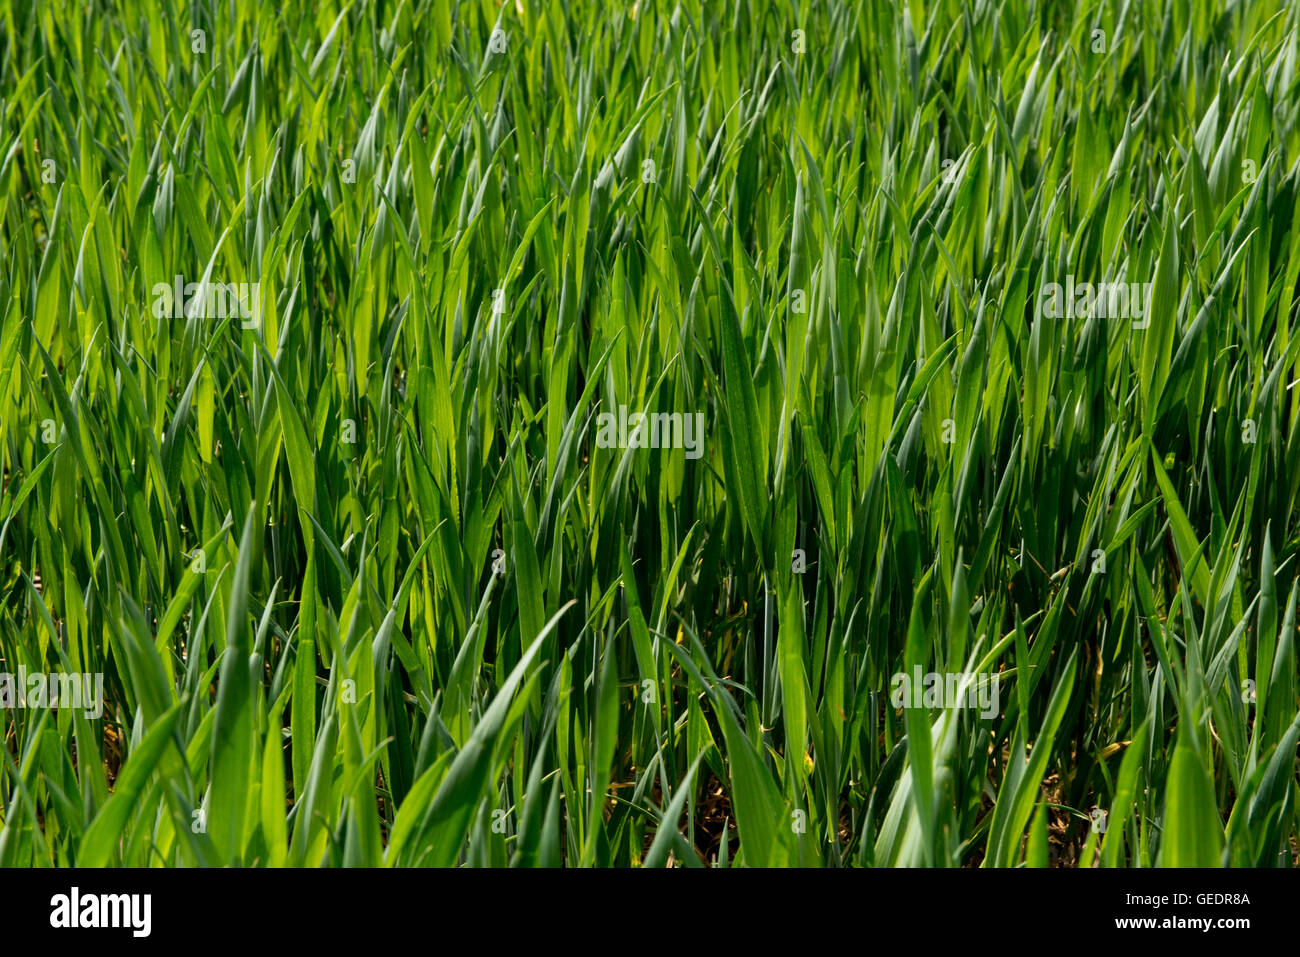 Young bearded wheat crop at stage 30, Berkshire, May - Stock Image